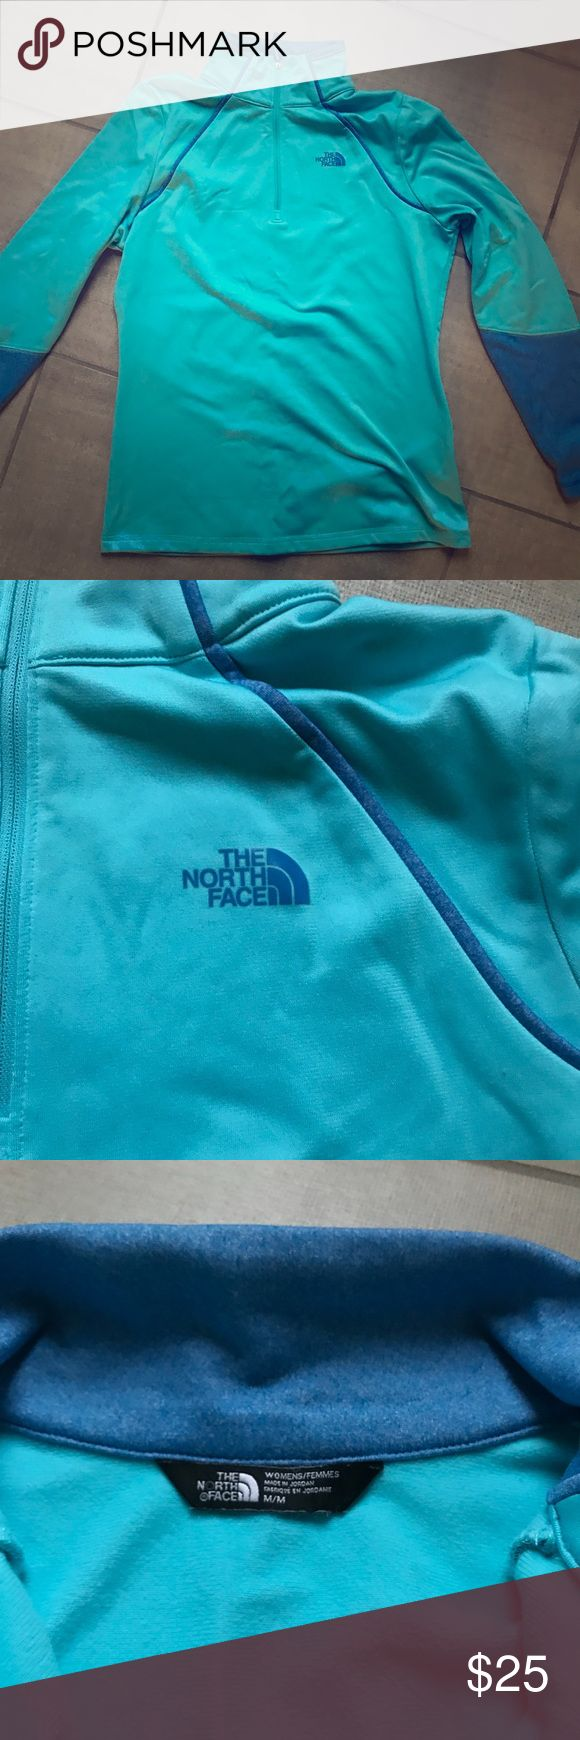 The North Face 1/4 ZIP Gently worn 1/4 zip The North Face. Purchased from The North Face Outlet store so it does not have the logo on the back. Size Medium. Fits slightly smaller. No stains or rips. Fleece lined inside. Perfect for winter! The North Face Tops Sweatshirts & Hoodies